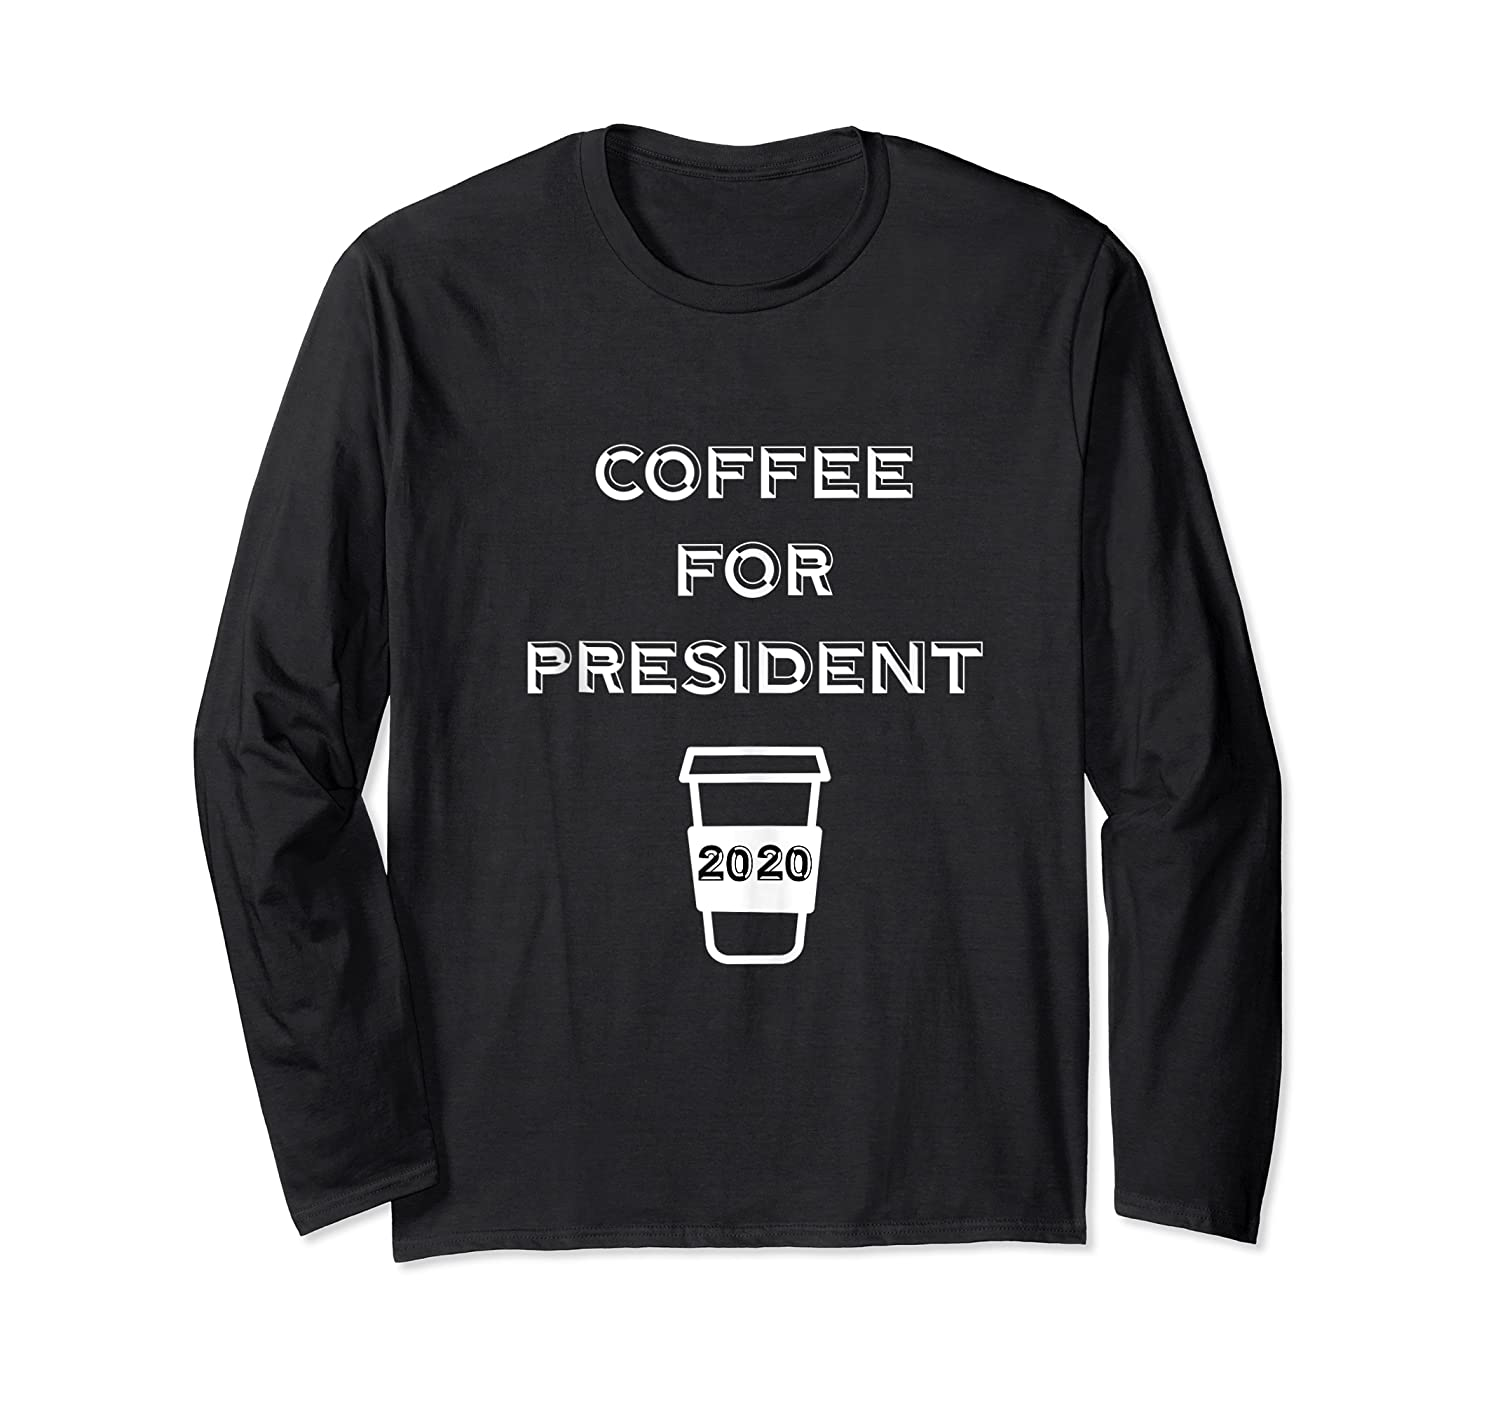 Coffee For President 2020 Funny Presidential Election Day Tank Top Shirts Long Sleeve T-shirt